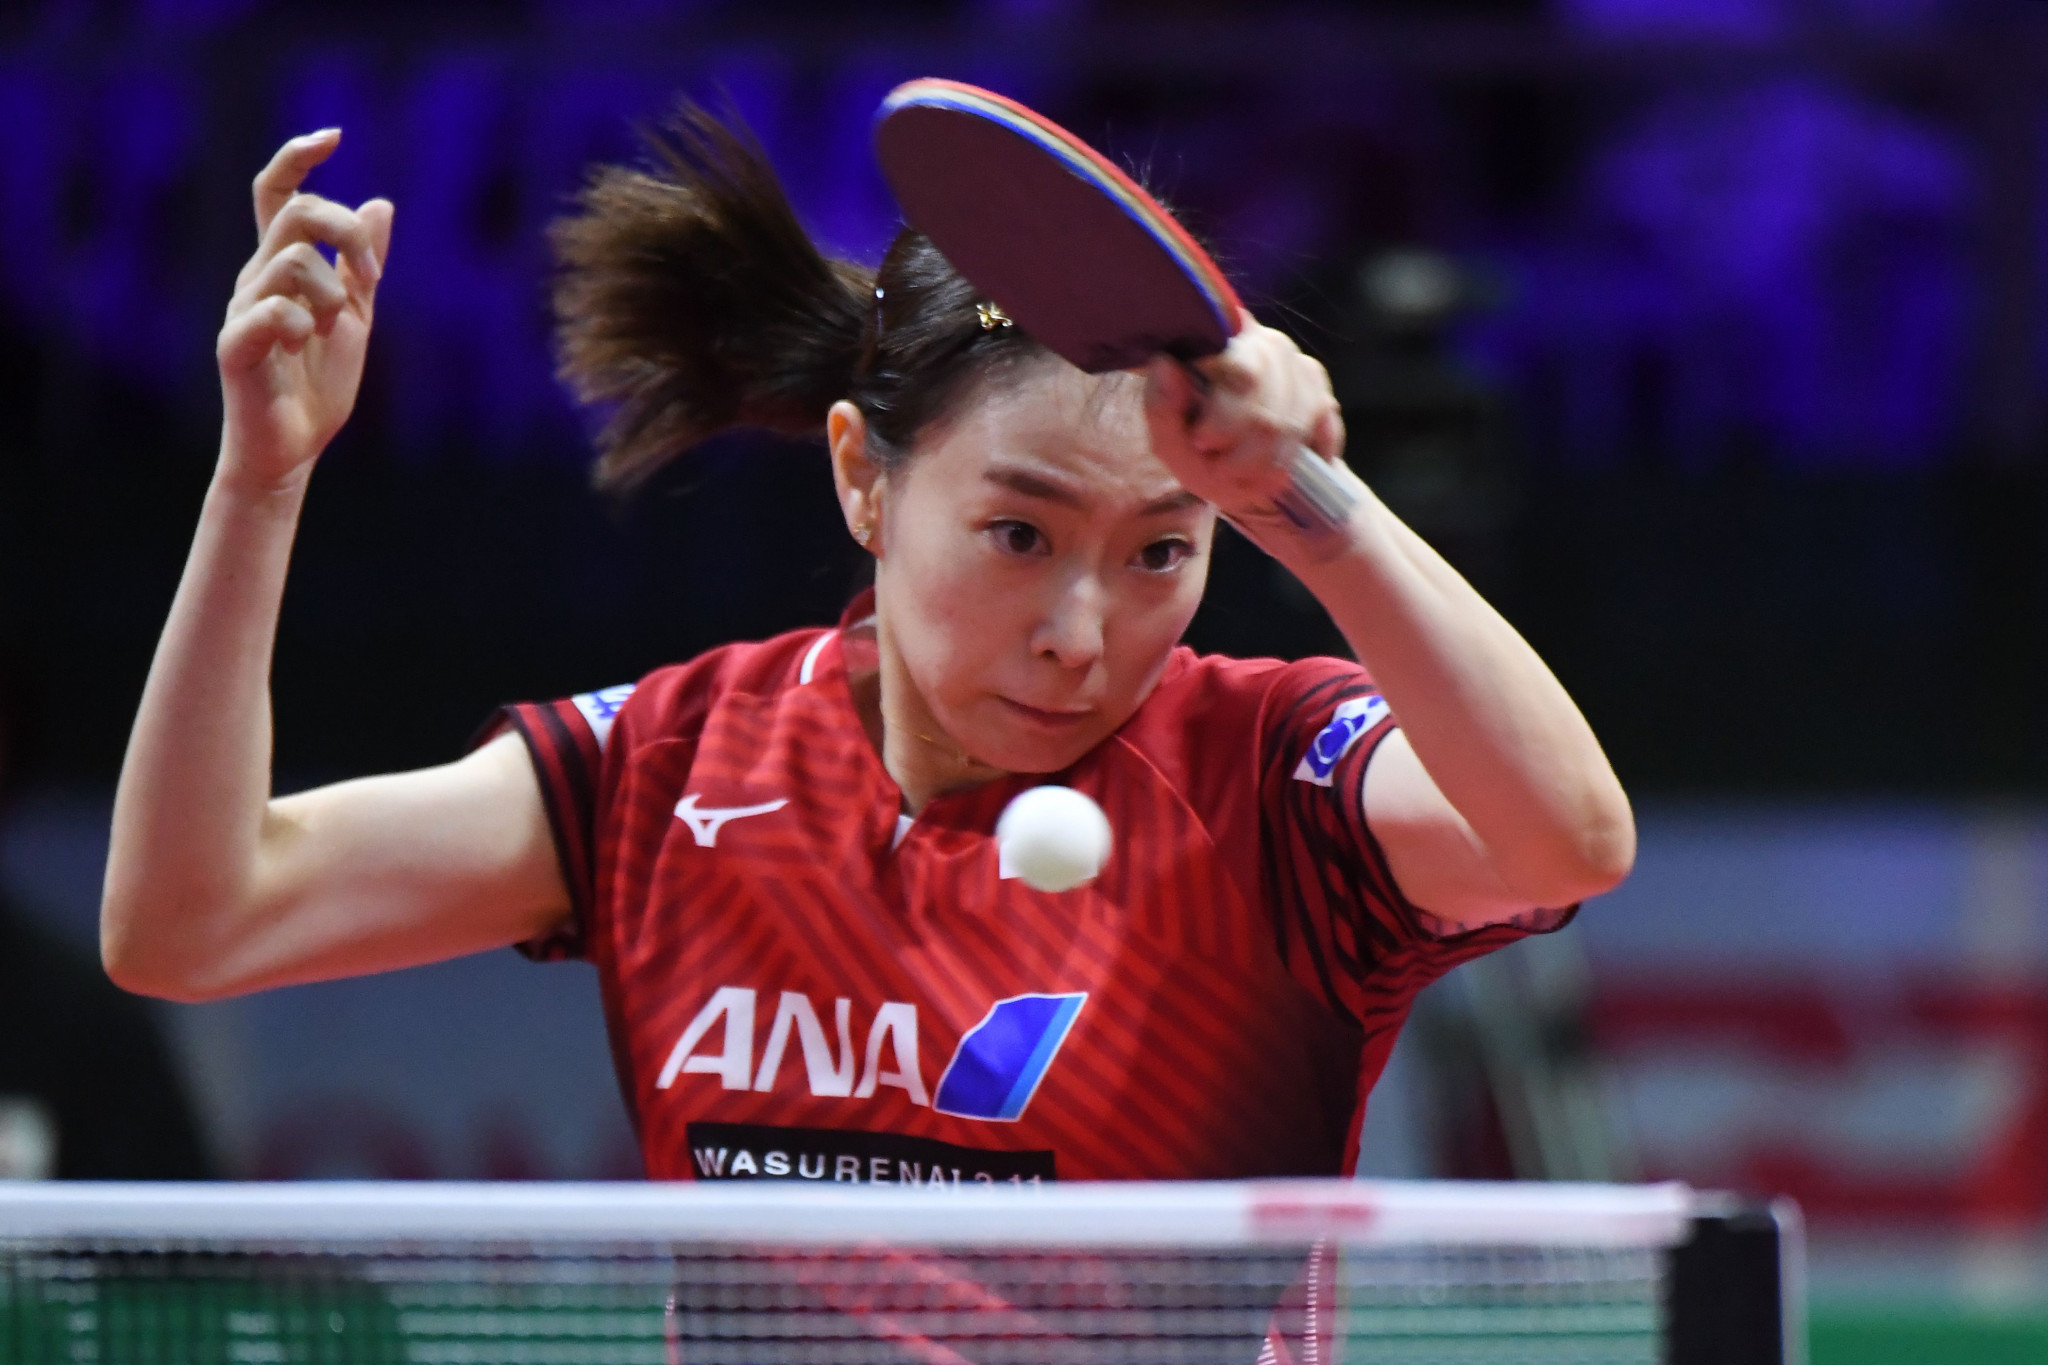 Top seed Kasumi Ishikawa of Japan will meet Portugal's Shao Jieni in the first round of the women's singles event ©Getty Images